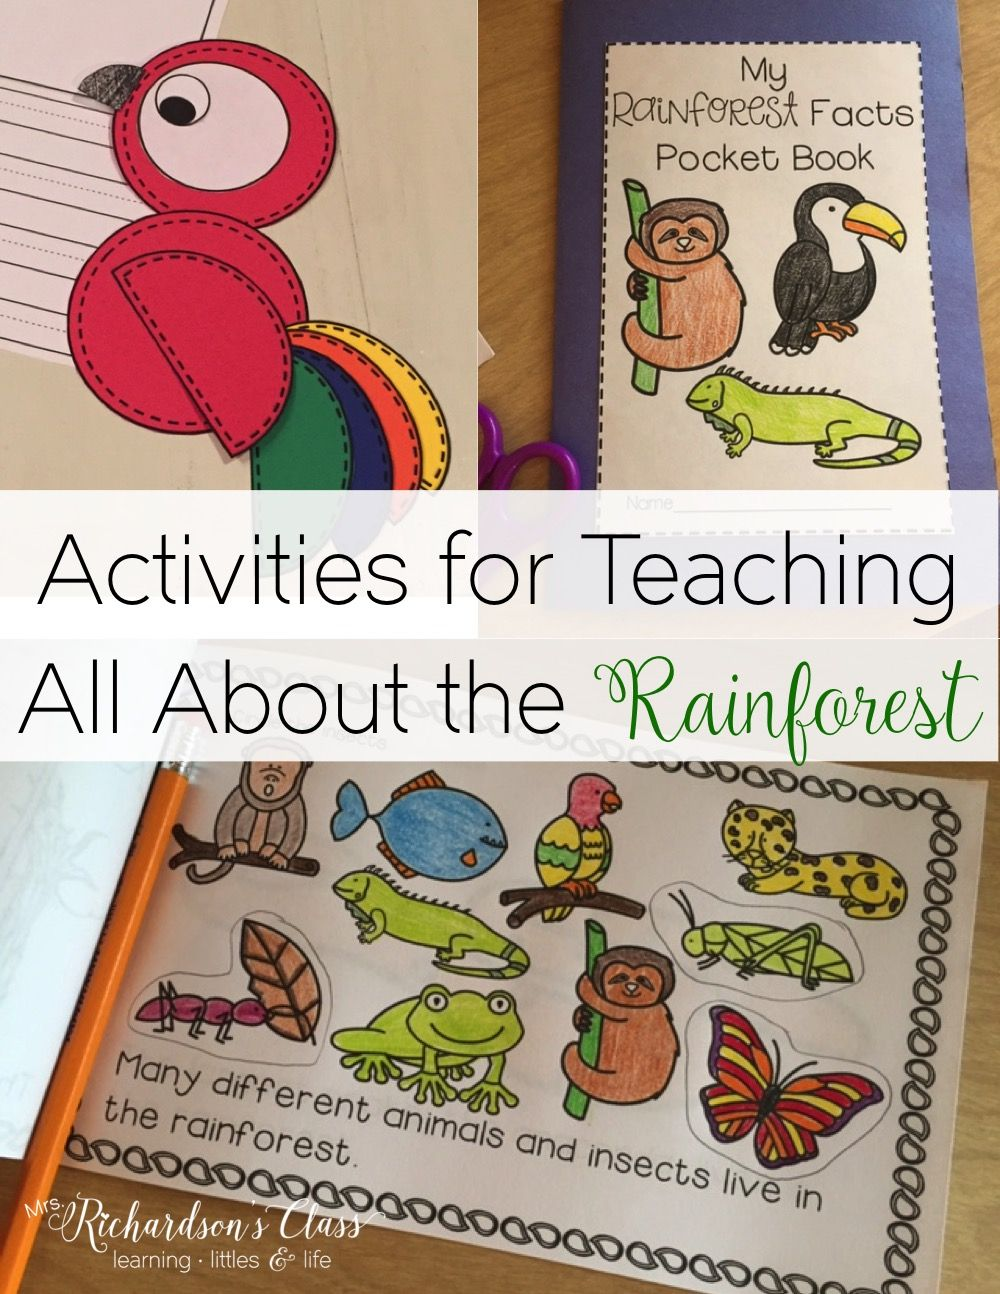 Rainforest Unit A Study of Rainforest Animals and Their